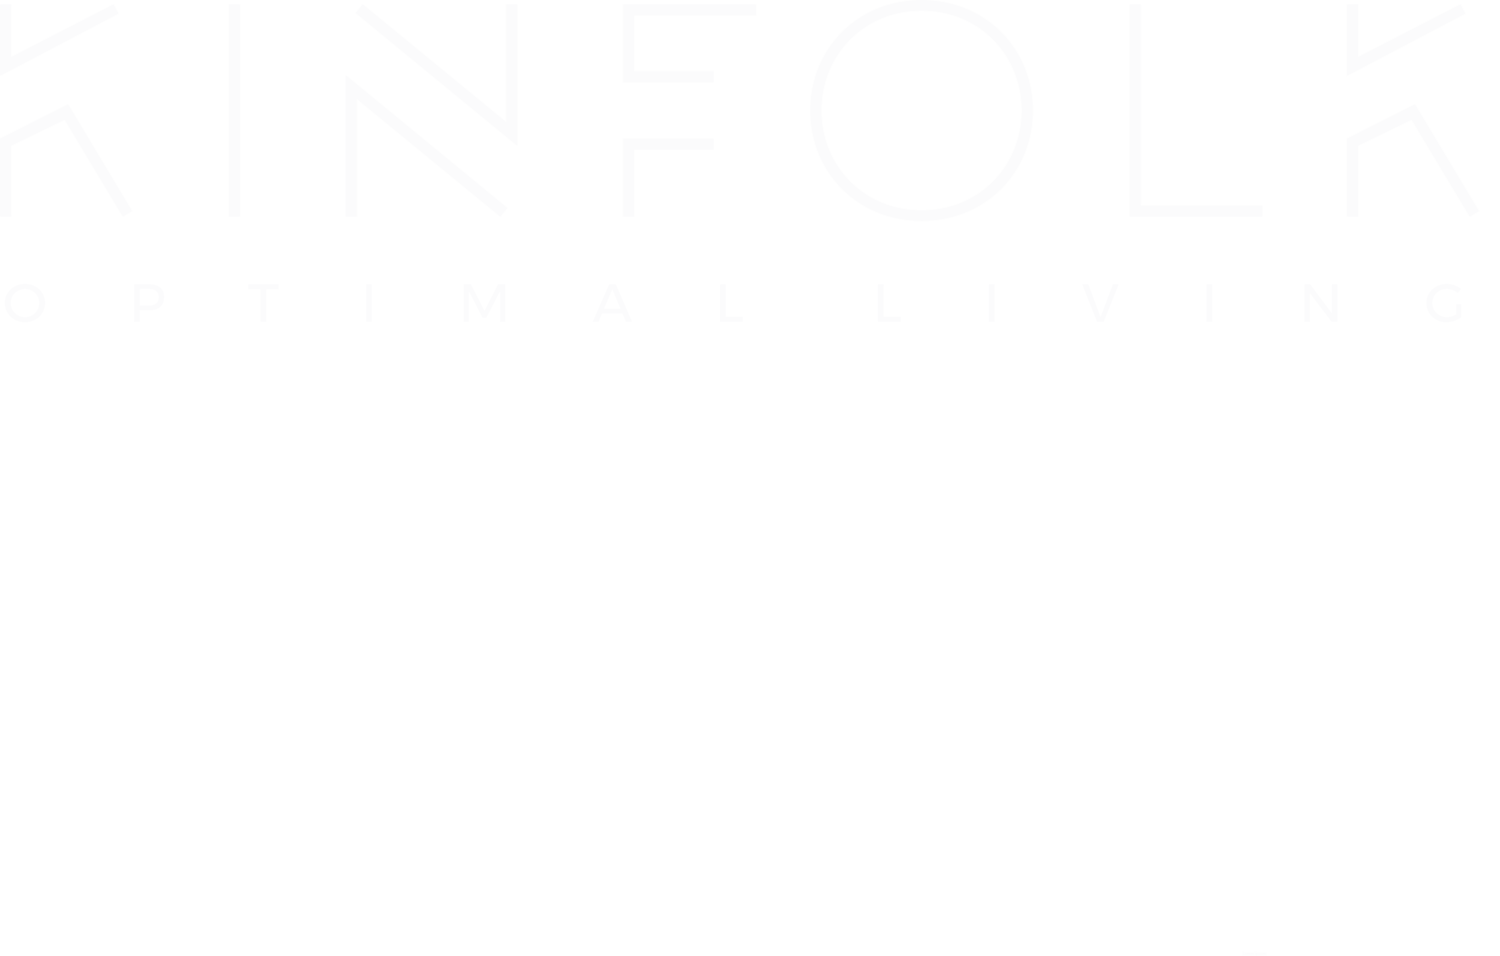 Kinfolk Optimal Living